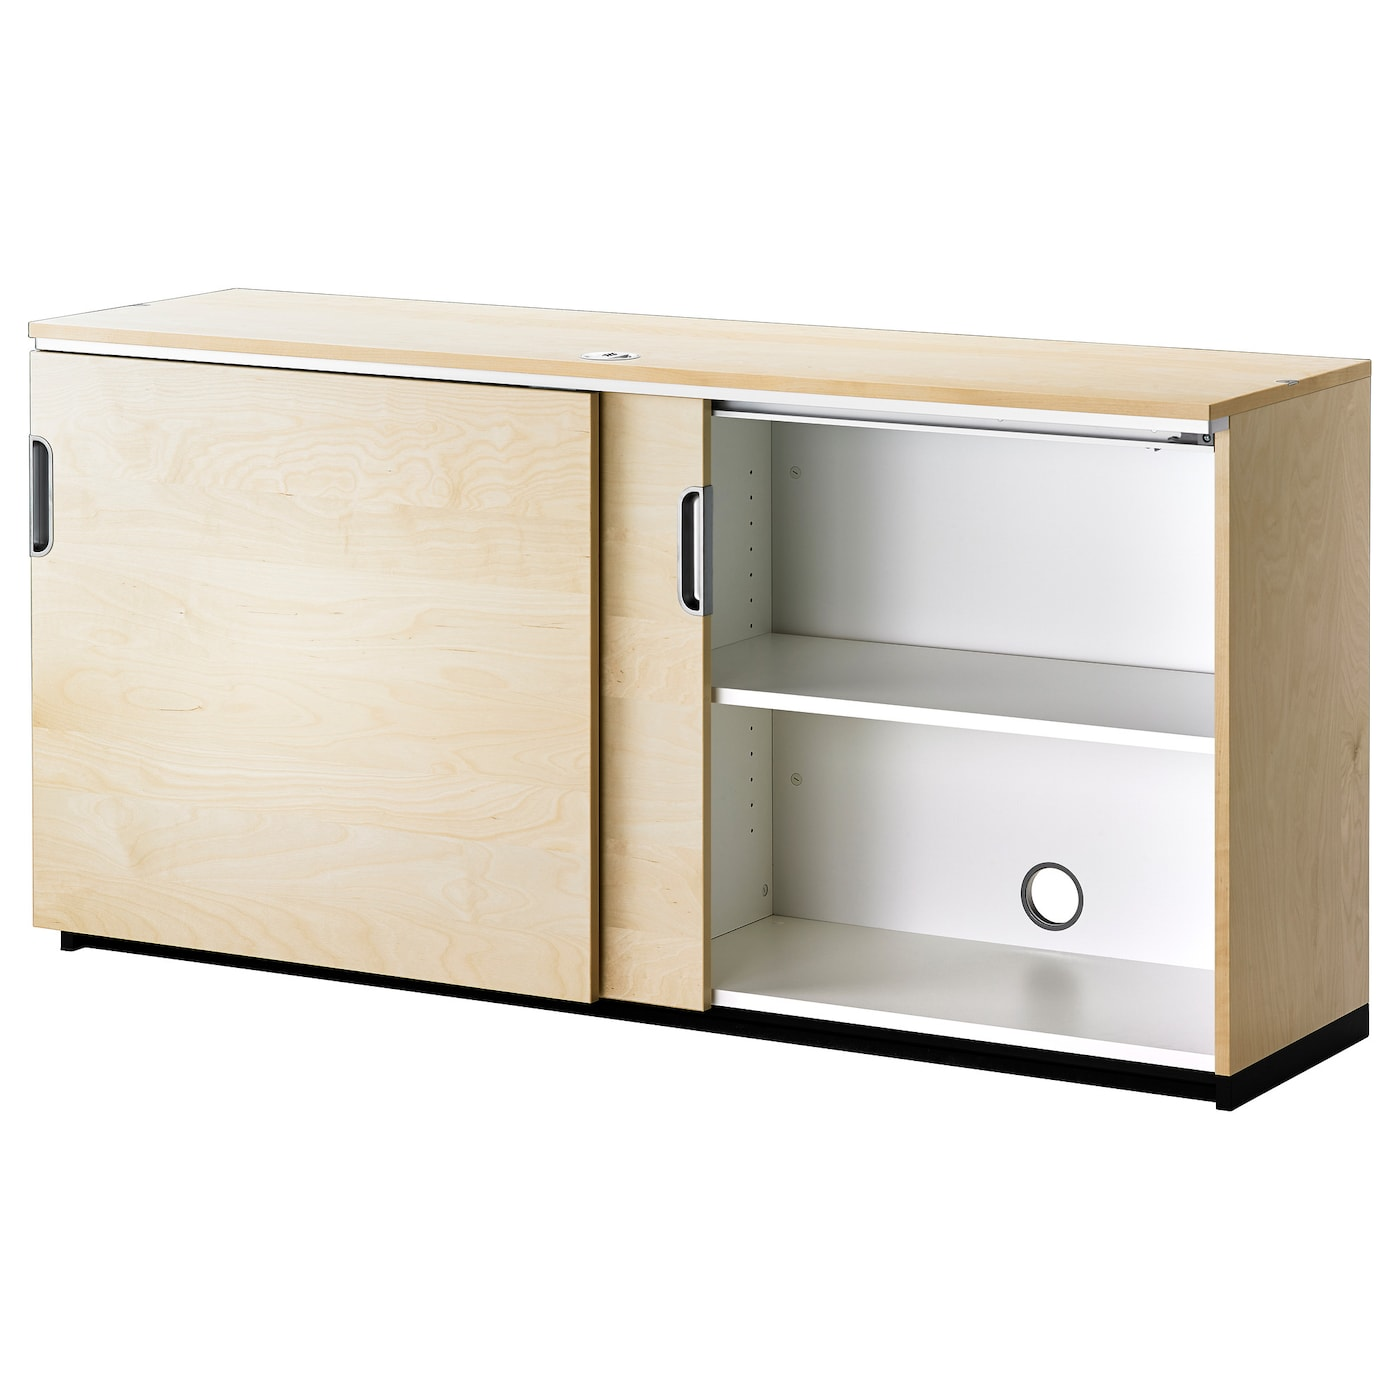 galant cabinet with sliding doors birch veneer 160 x 80 cm ikea. Black Bedroom Furniture Sets. Home Design Ideas